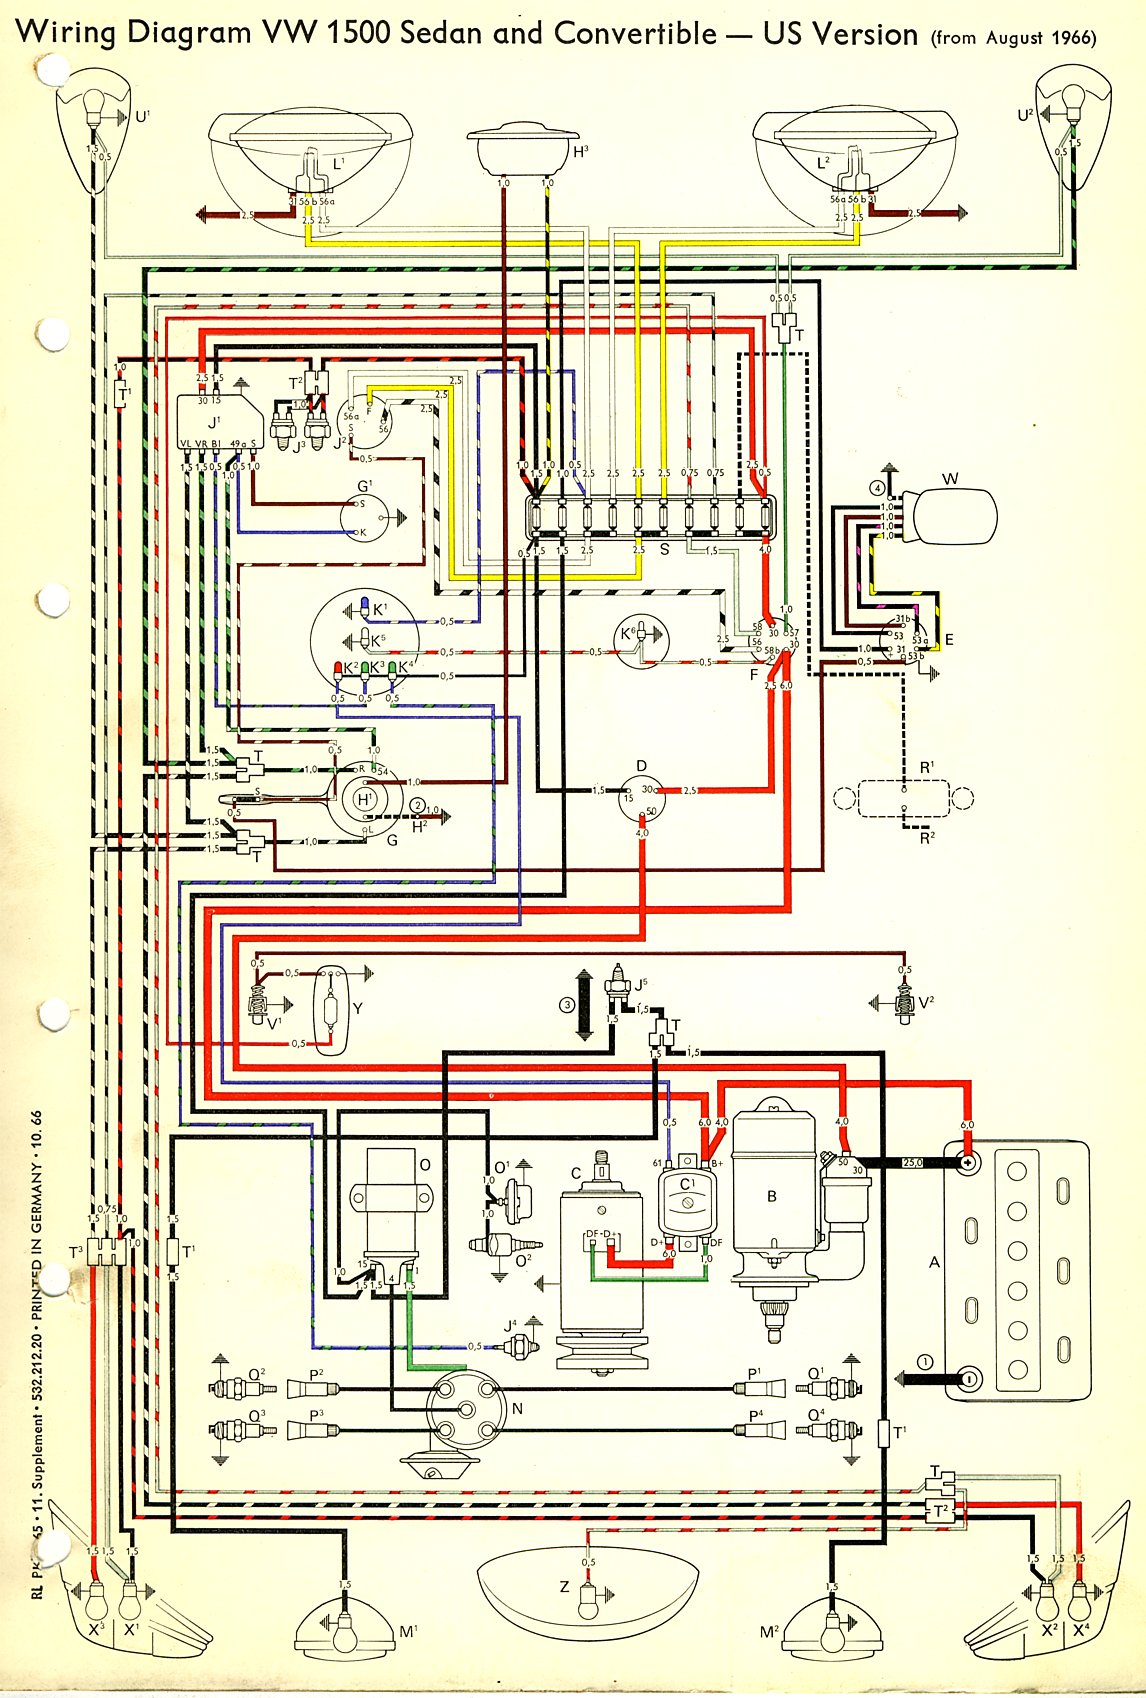 bug_67_USA thesamba com type 1 wiring diagrams 1973 vw beetle wiring diagram at n-0.co